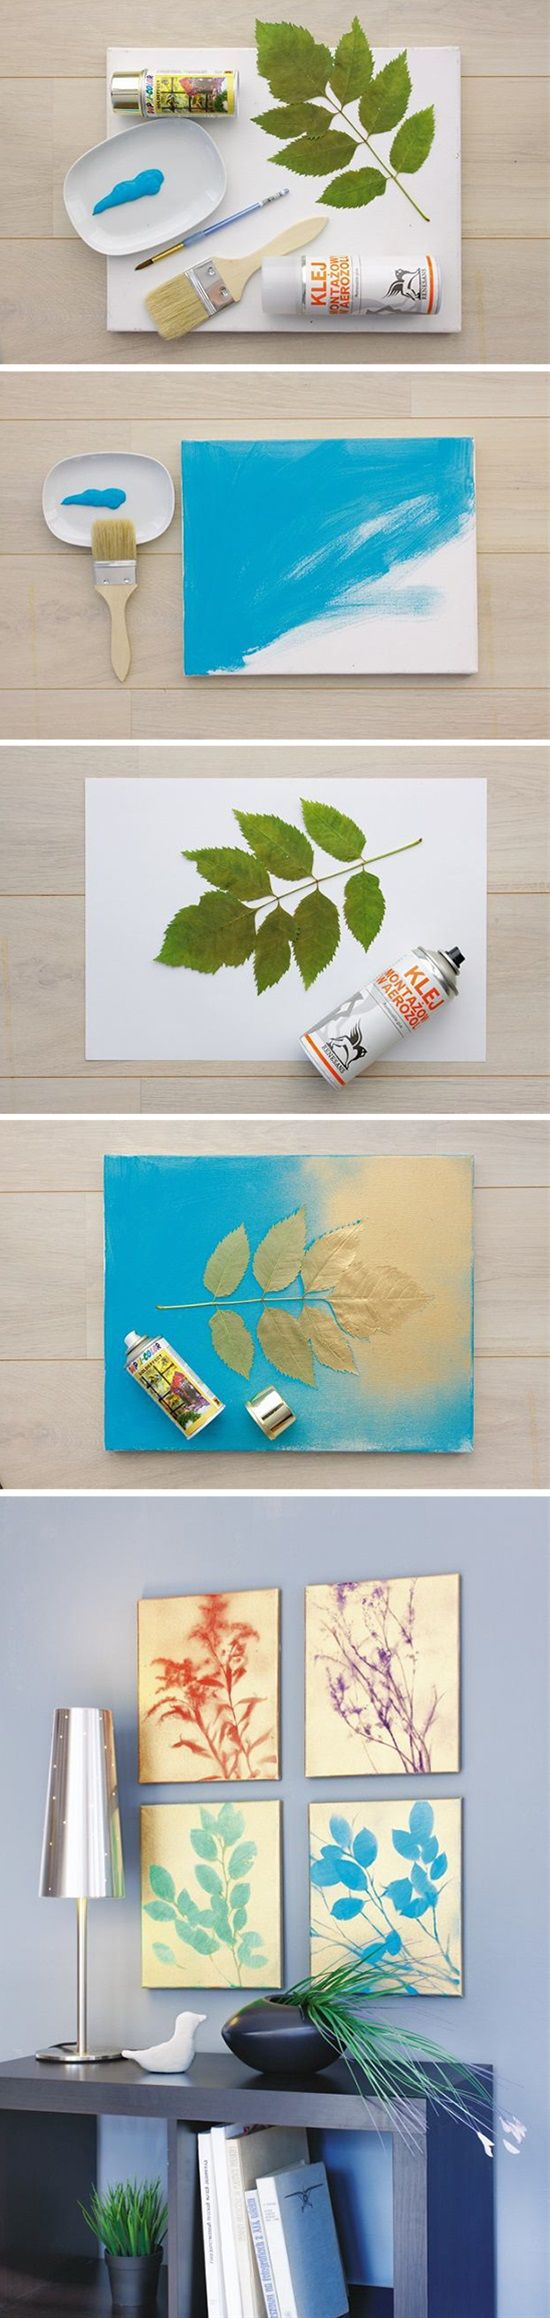 Spray-Painted Nature